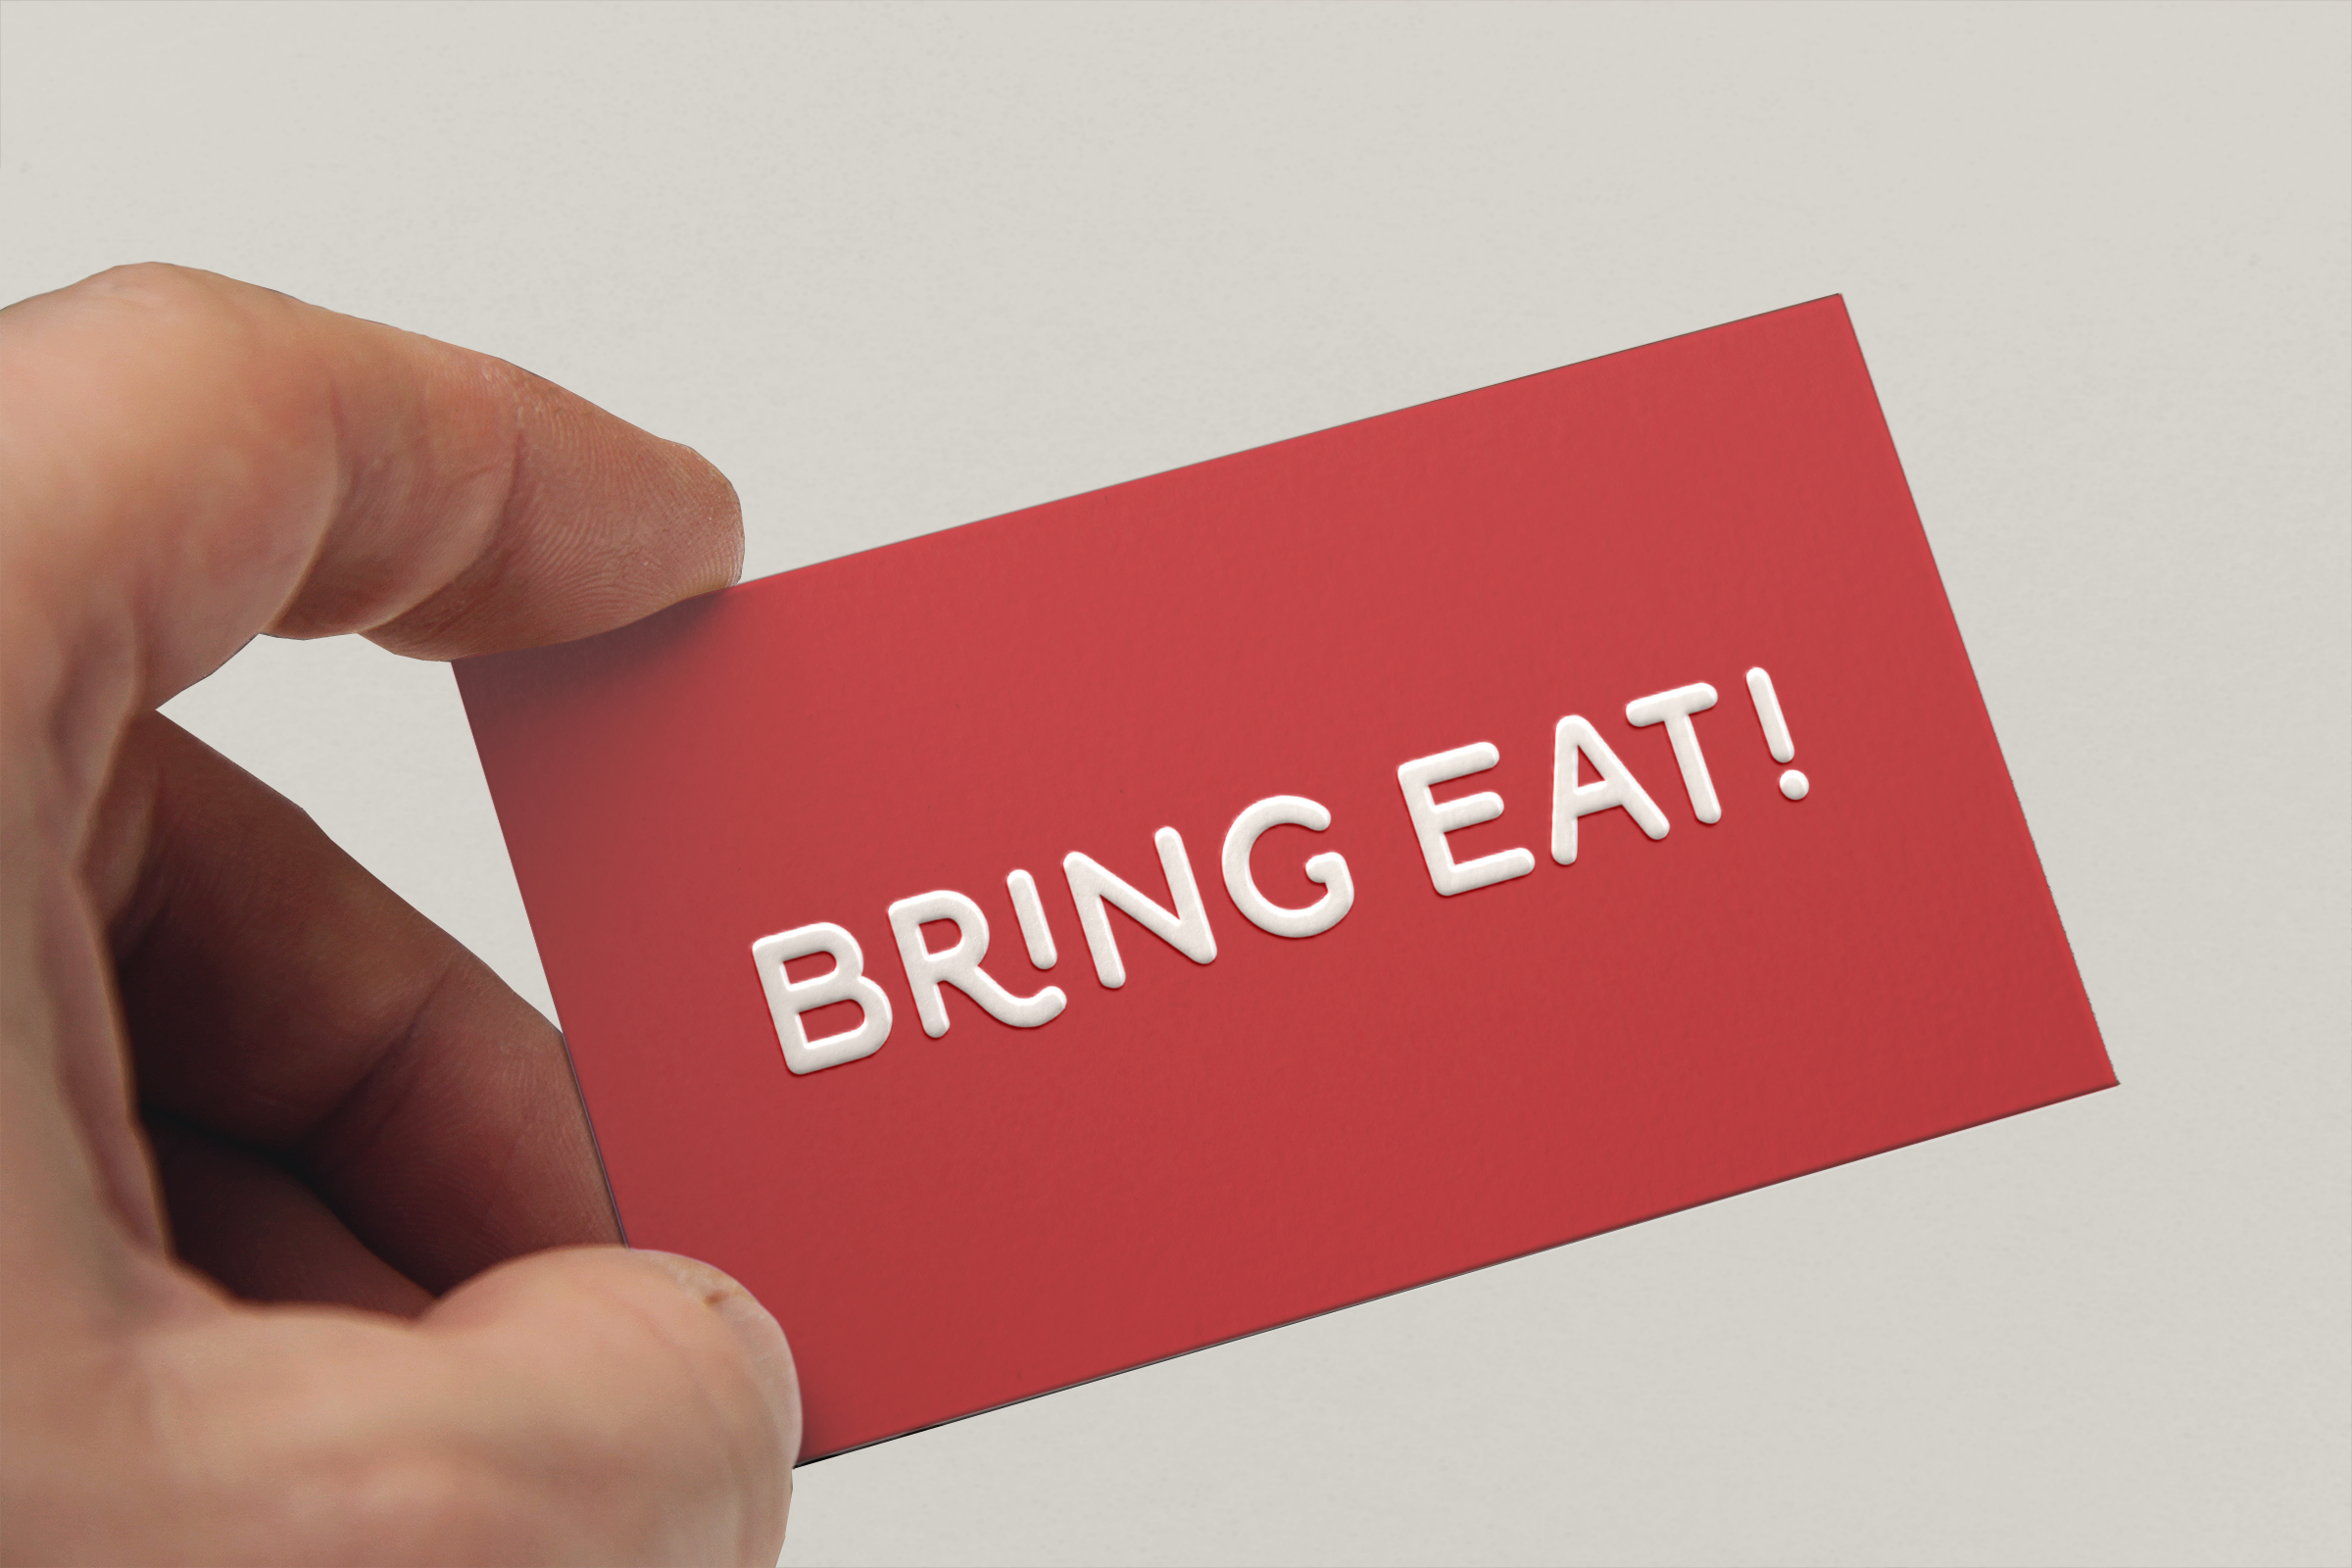 Bring Eat business_card